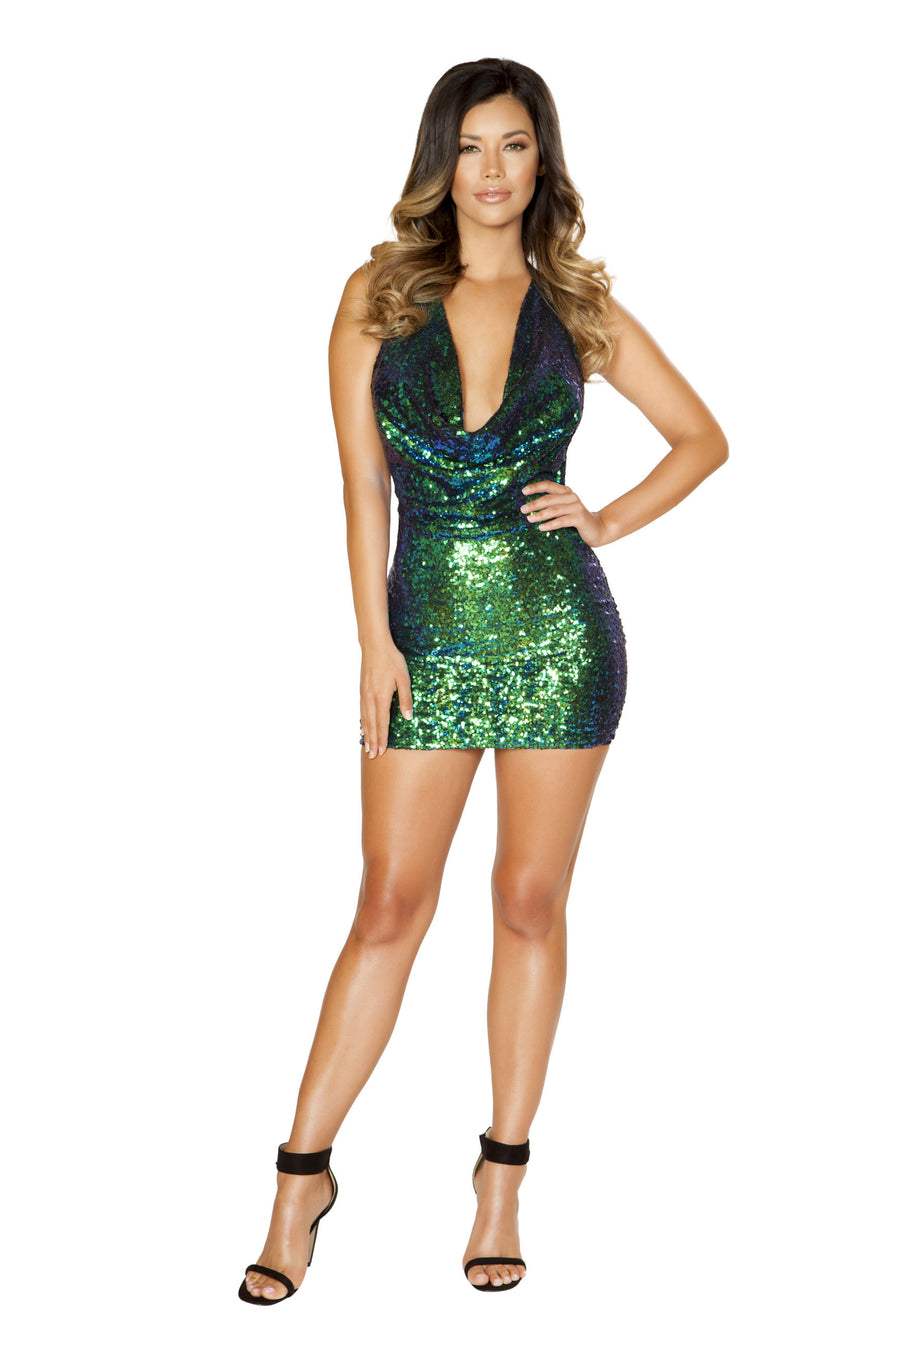 Iridescent Sequin Cowl Neck Dress - Mini Dresses, Roma - YourLamode